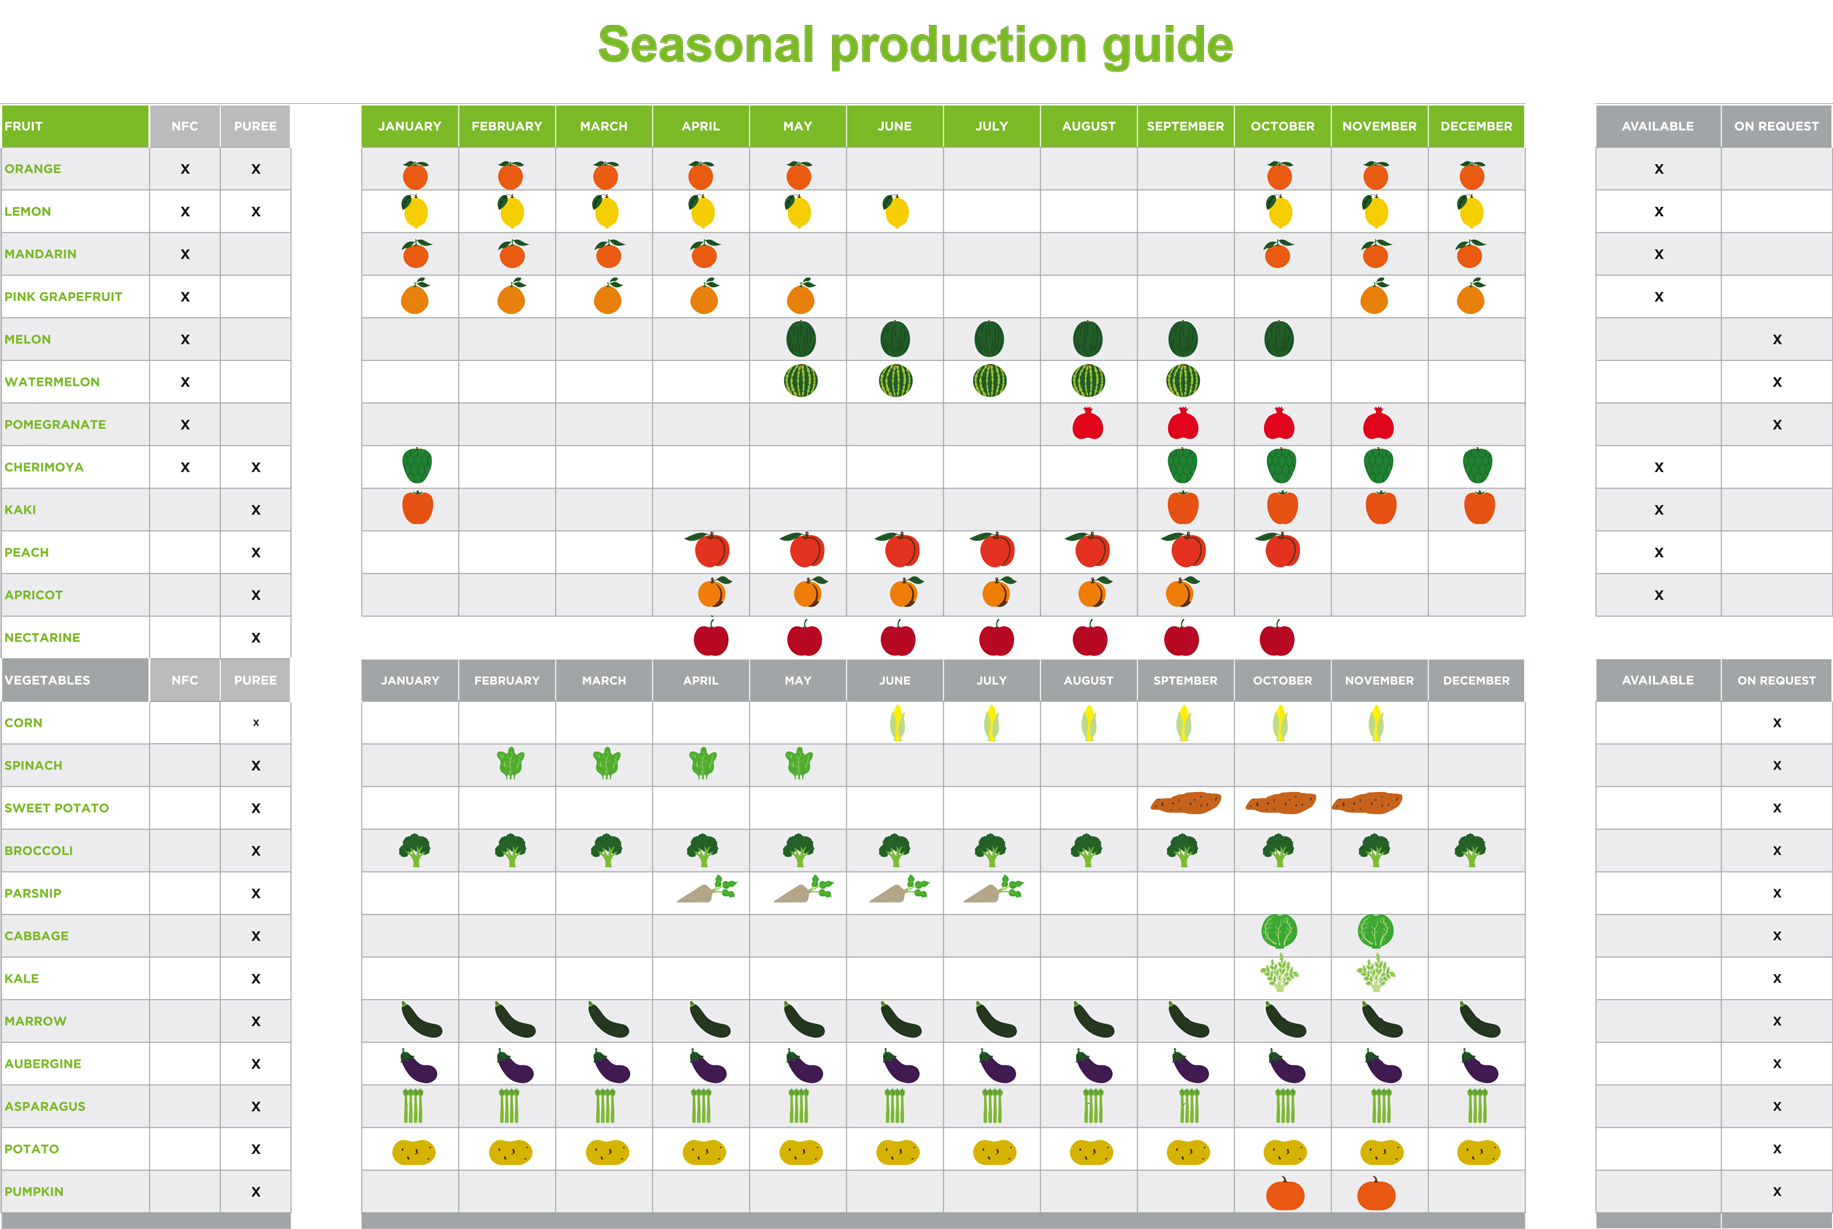 SEASONAL-PRODUCTION-GUIDE